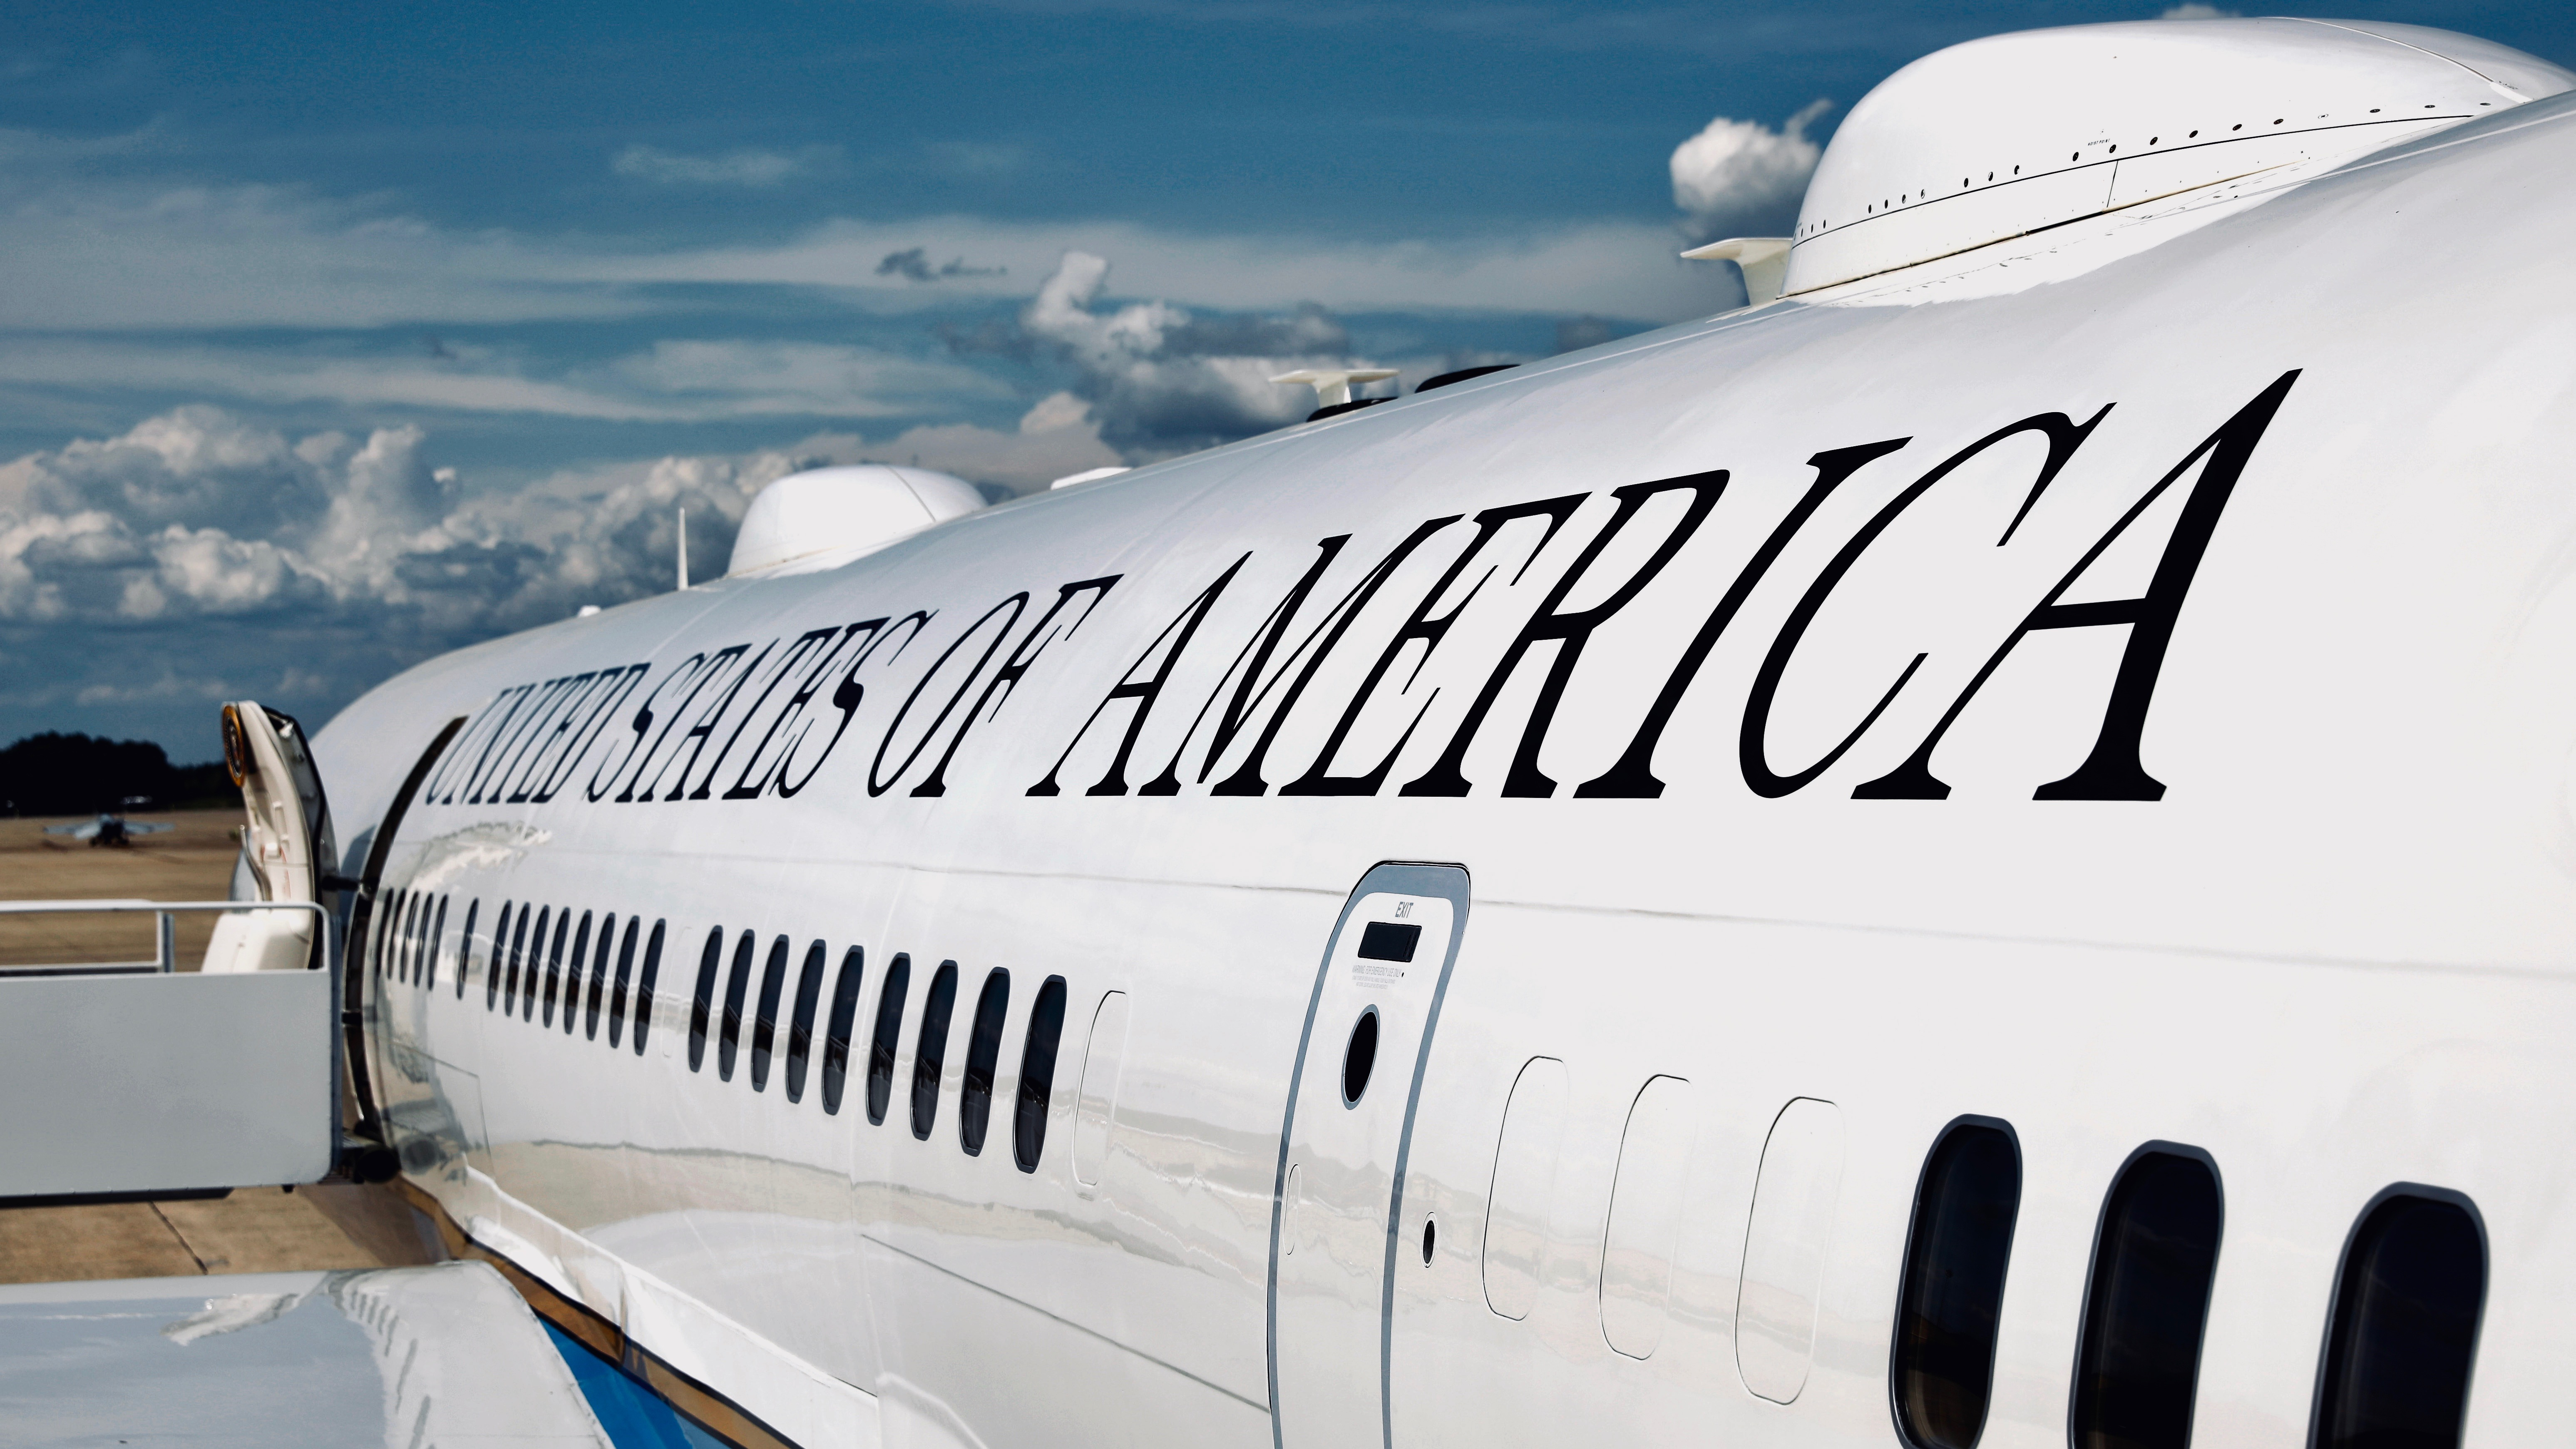 A portion of Air force One, the US presidential plane.